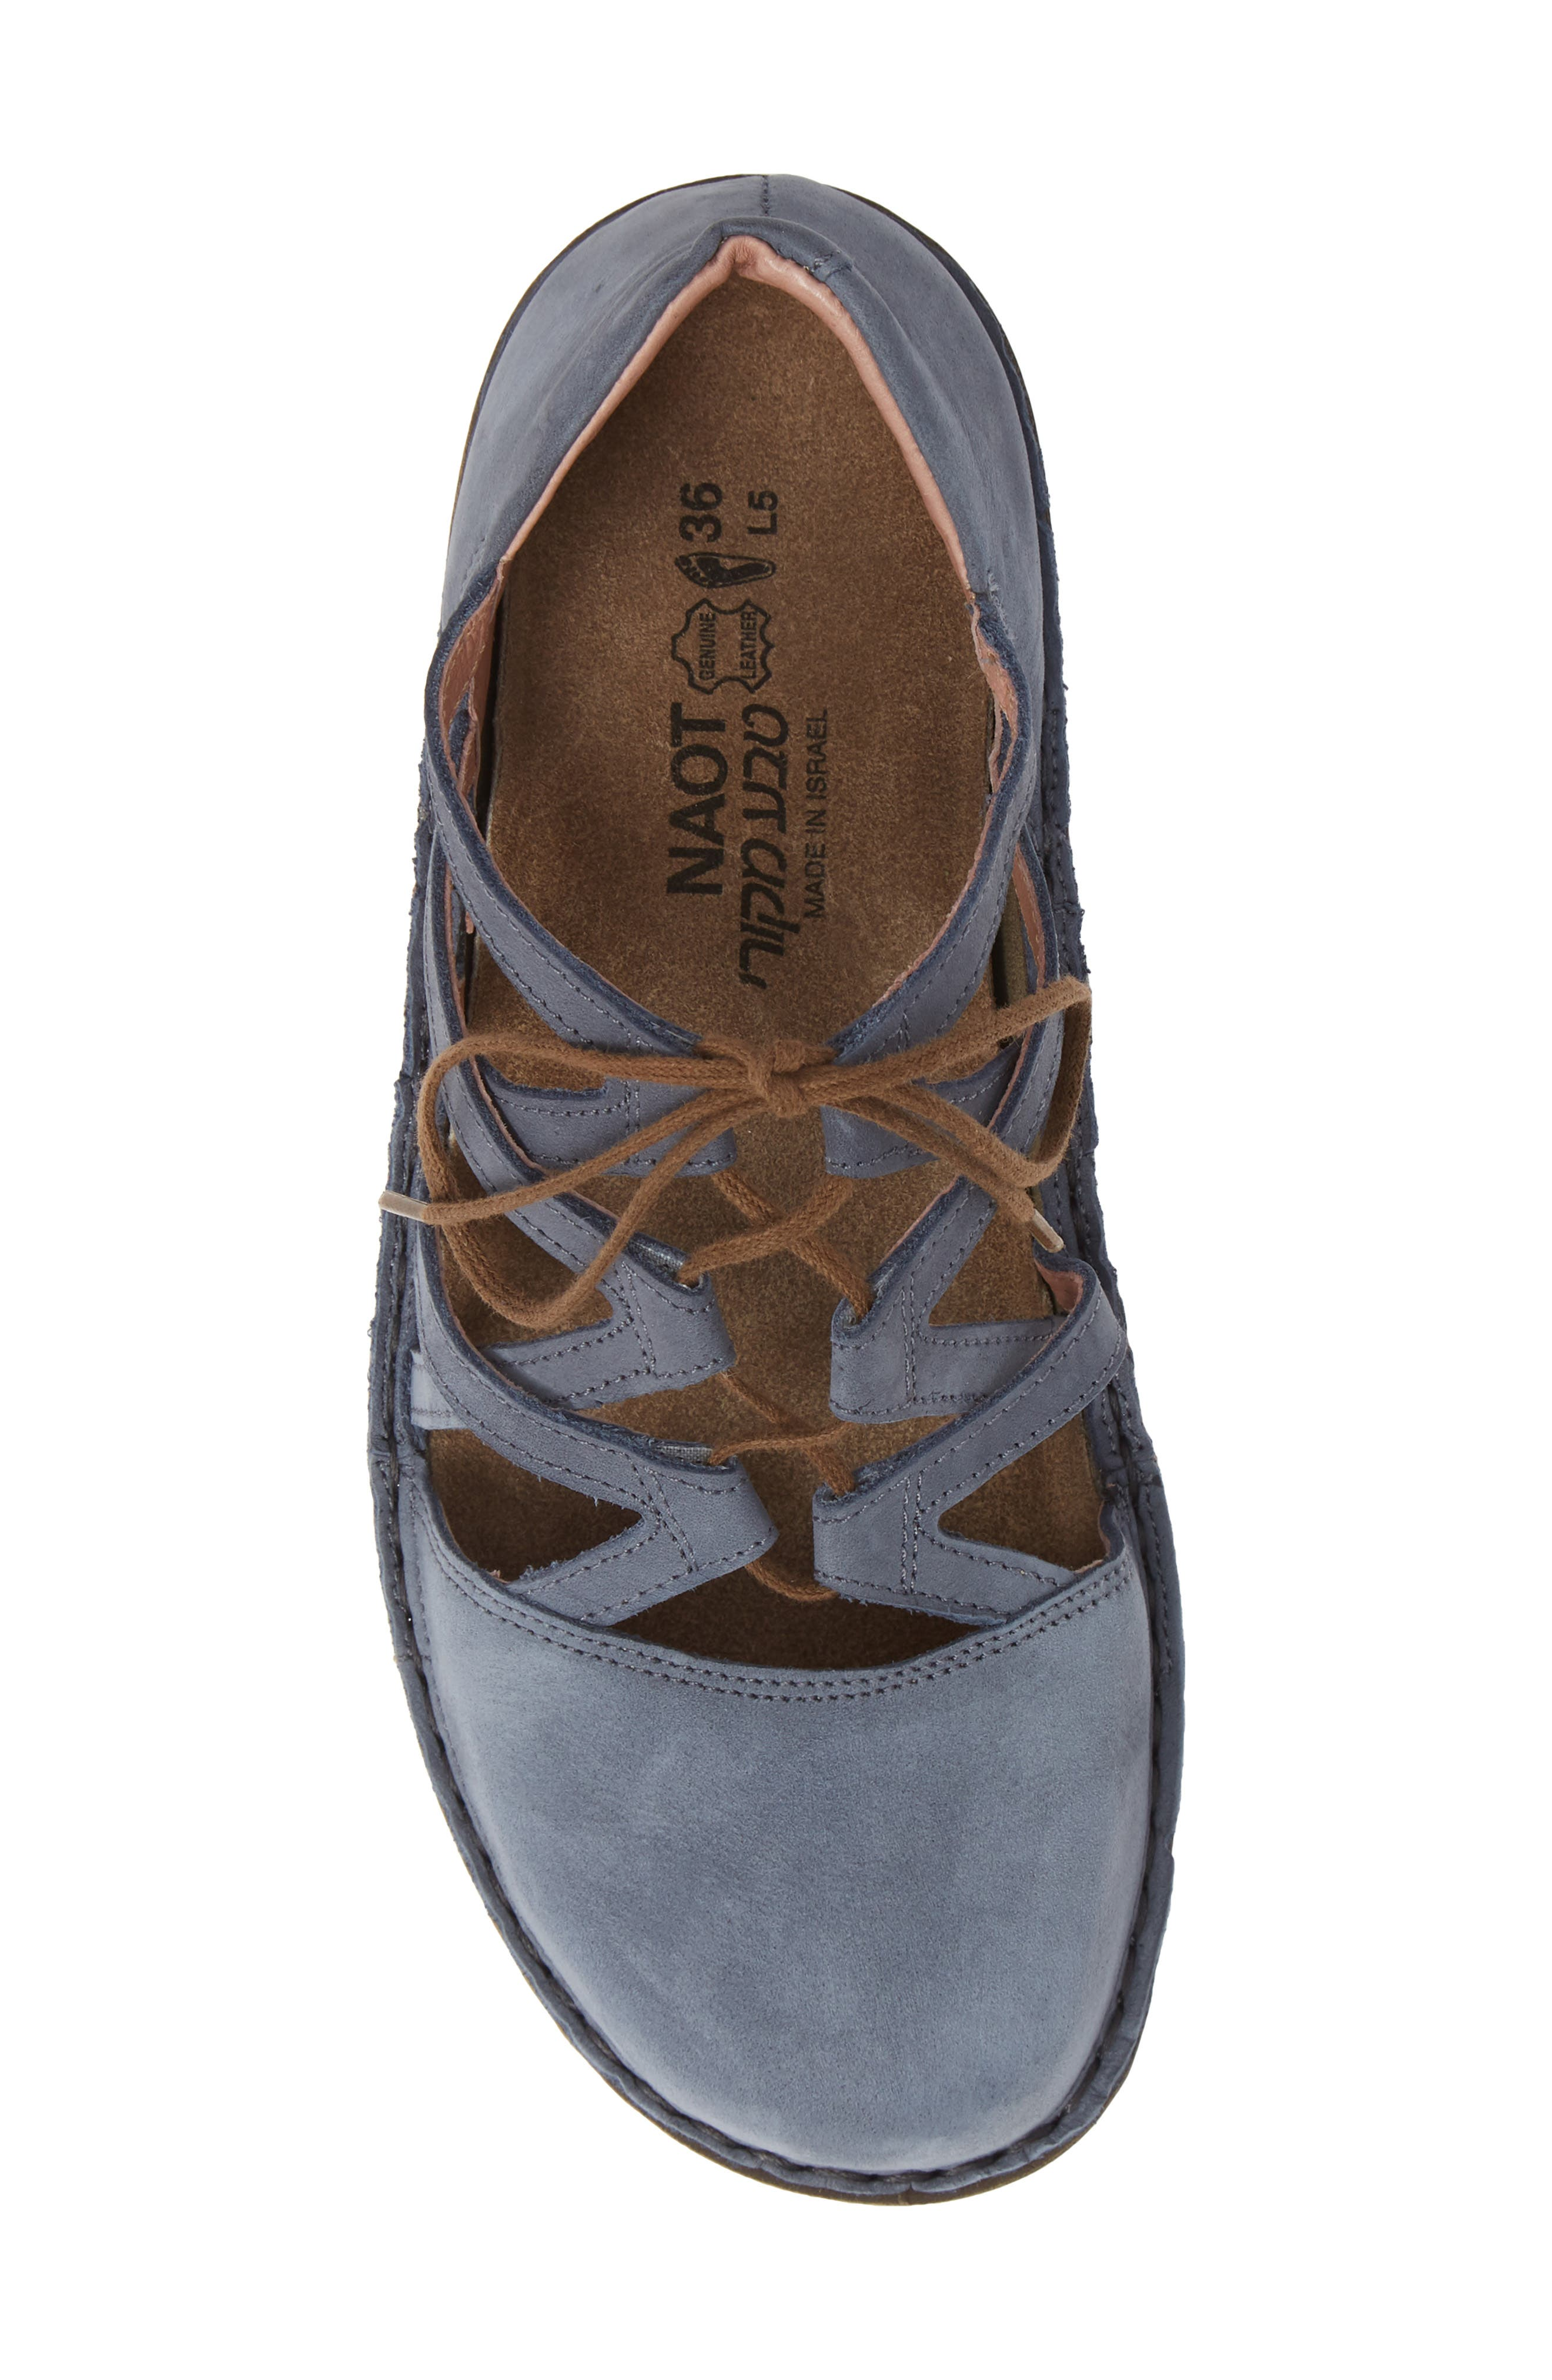 NAOT, Calathea Ghillie Laced Wedge, Alternate thumbnail 5, color, FEATHERY BLUE NUBUCK